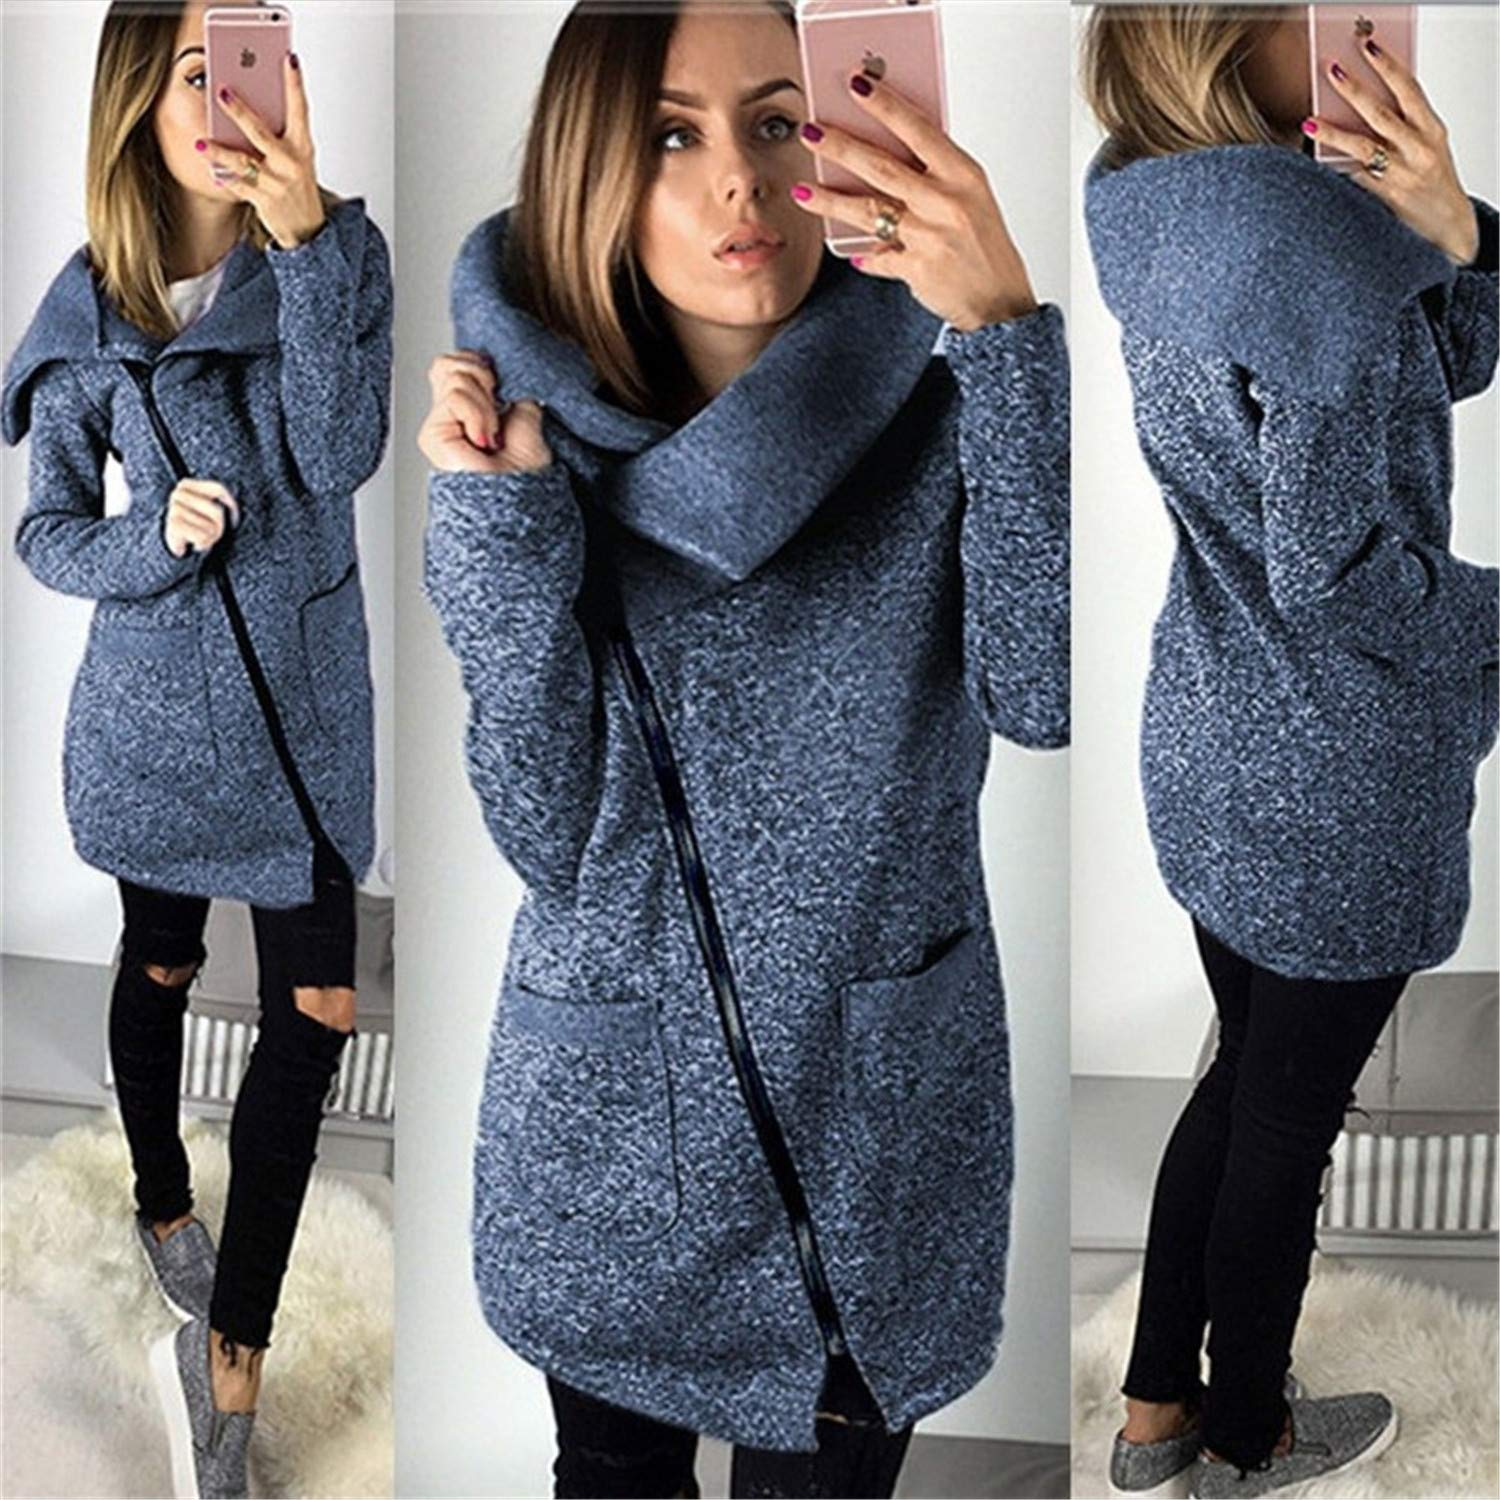 Amazon.com: Nhequren 2018 Women Spring Winter Fleece Sweatshirt Hoodie Long Zipper Hoodies Jacket Coat Outwear Plus Size 5XL Sudaderas para Mujer Blue XXXL: ...